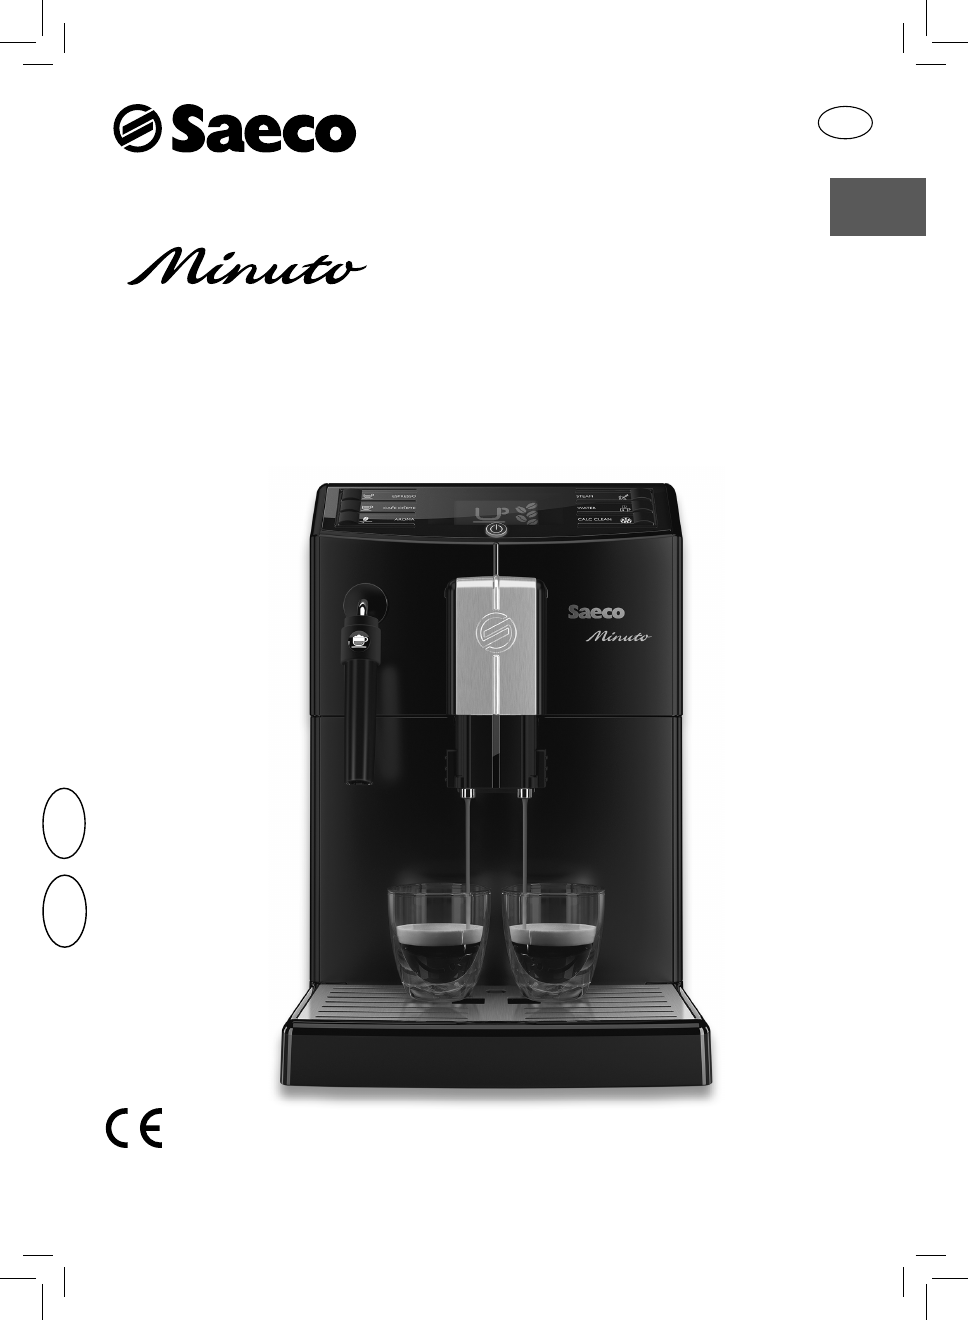 Saeco Coffee Maker Owner S Manual : Saeco Coffee Makers Coffeemaker HD8761 User Guide ManualsOnline.com